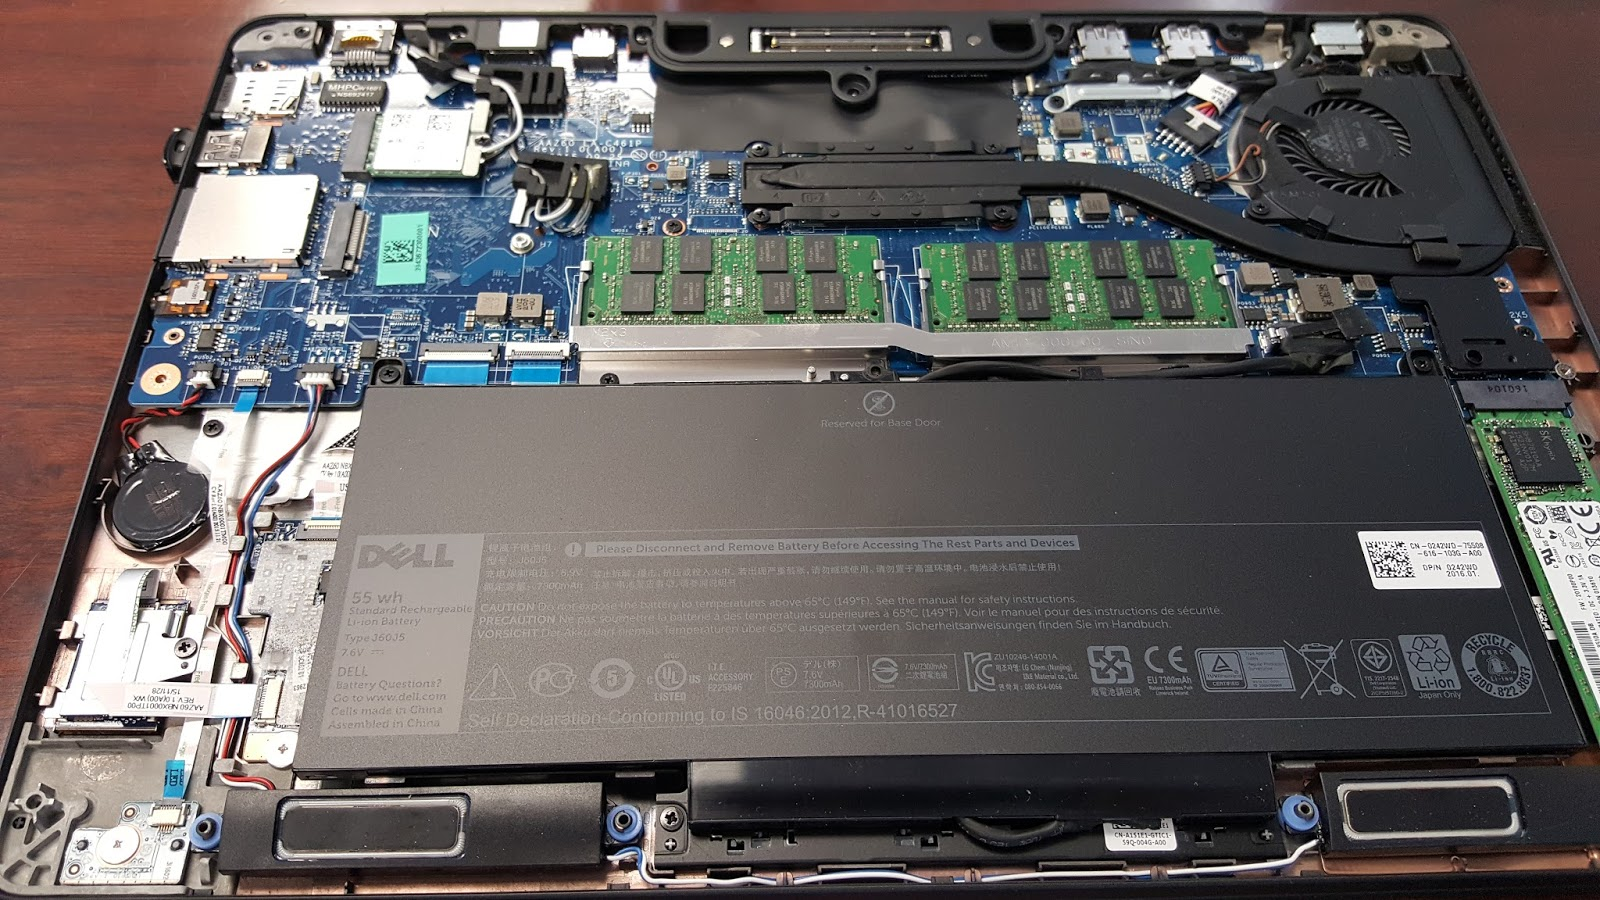 Randomly Learned: Inside Photos of Dell Latitude E7470